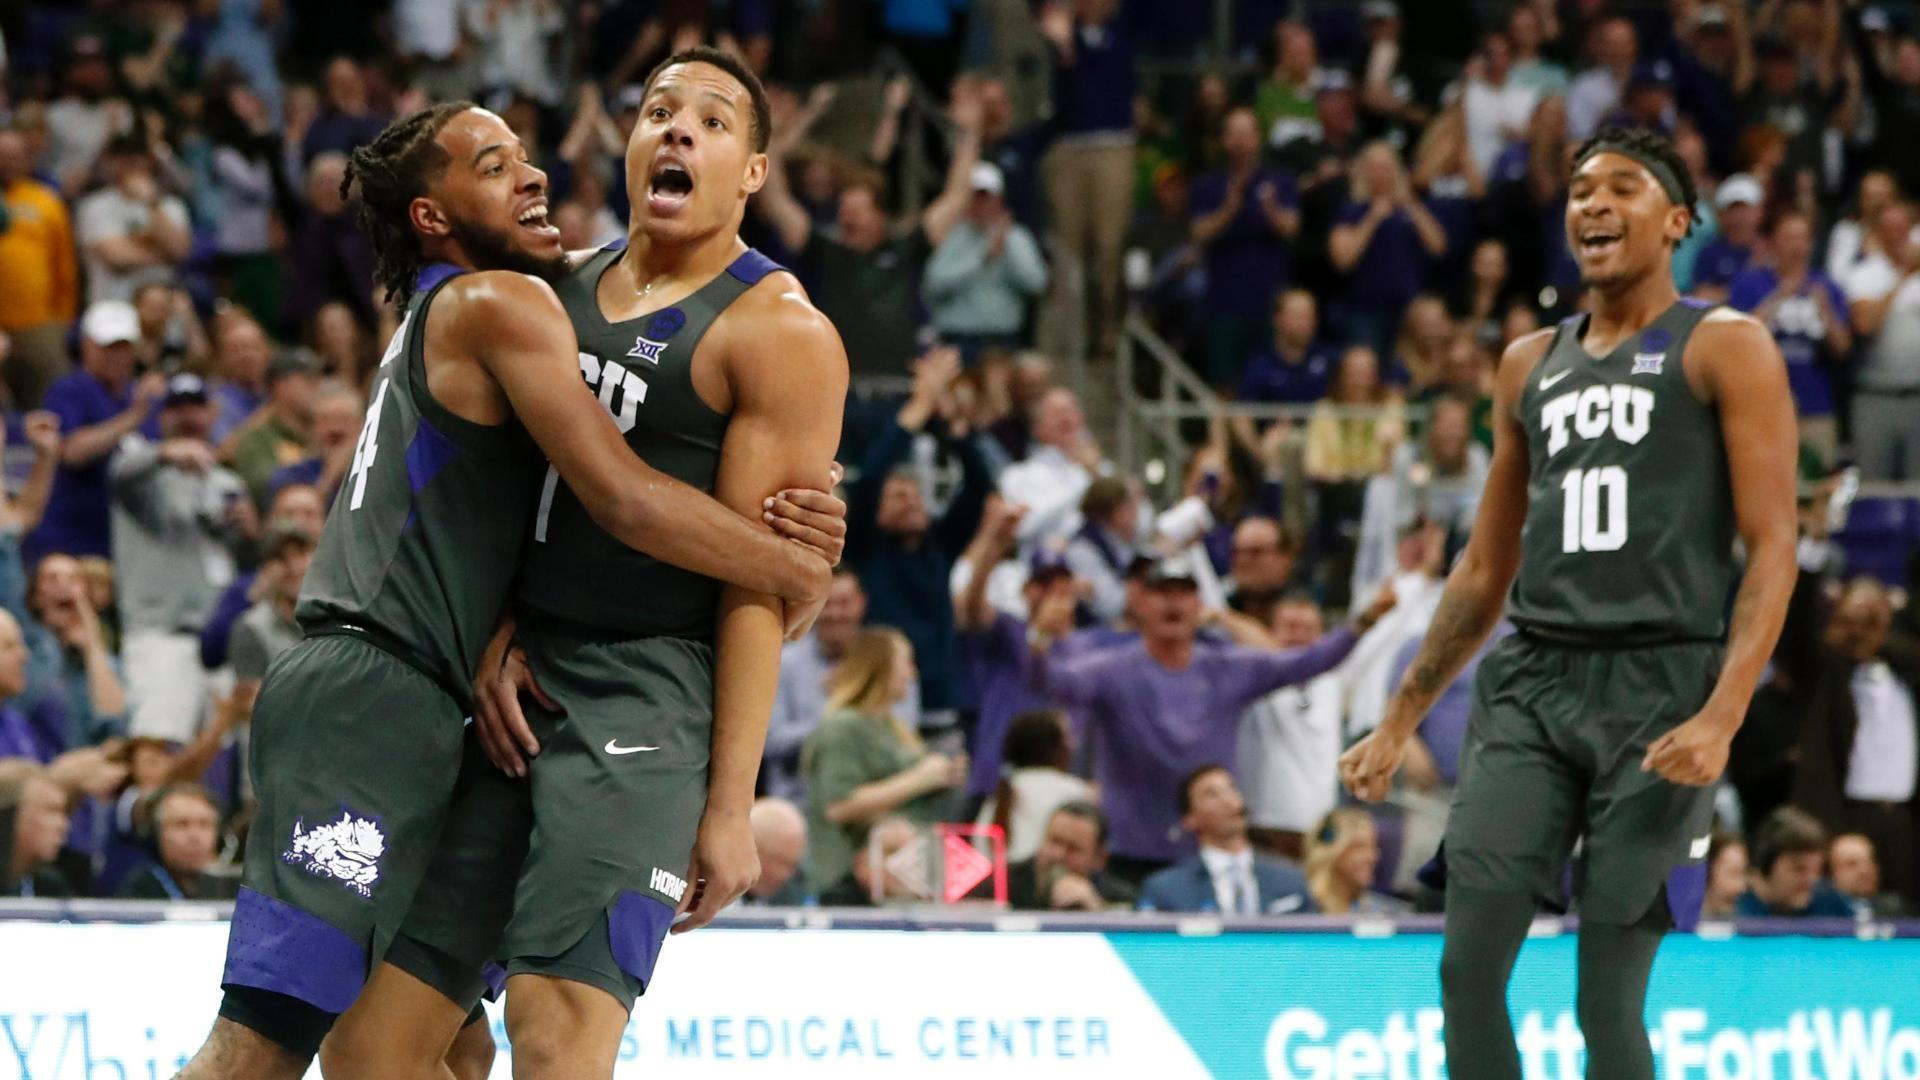 Bane leads TCU to upset of No. 2 Baylor